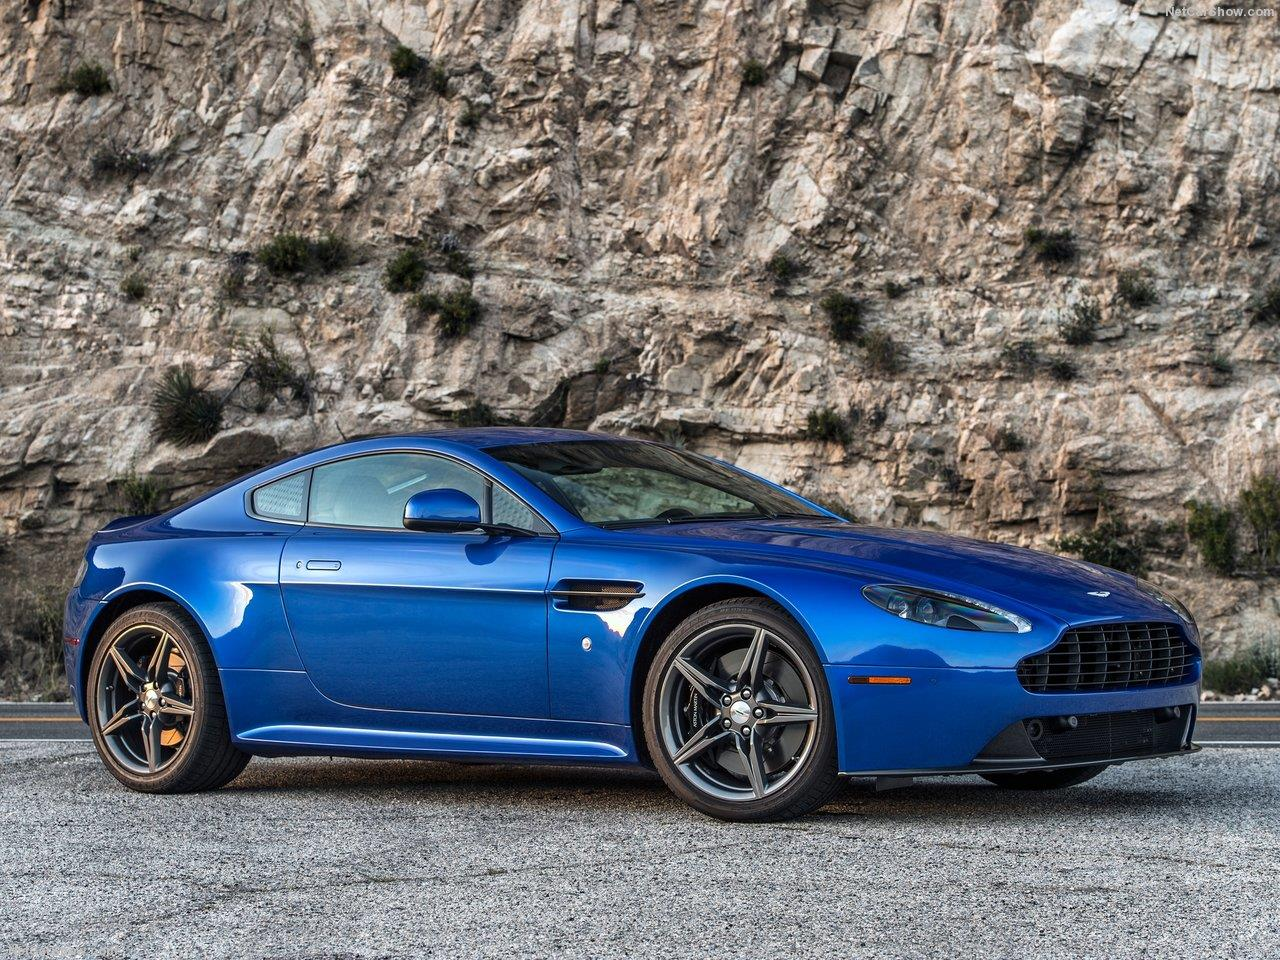 Next-gen Aston Martin Vantage to use AMG V8 engines